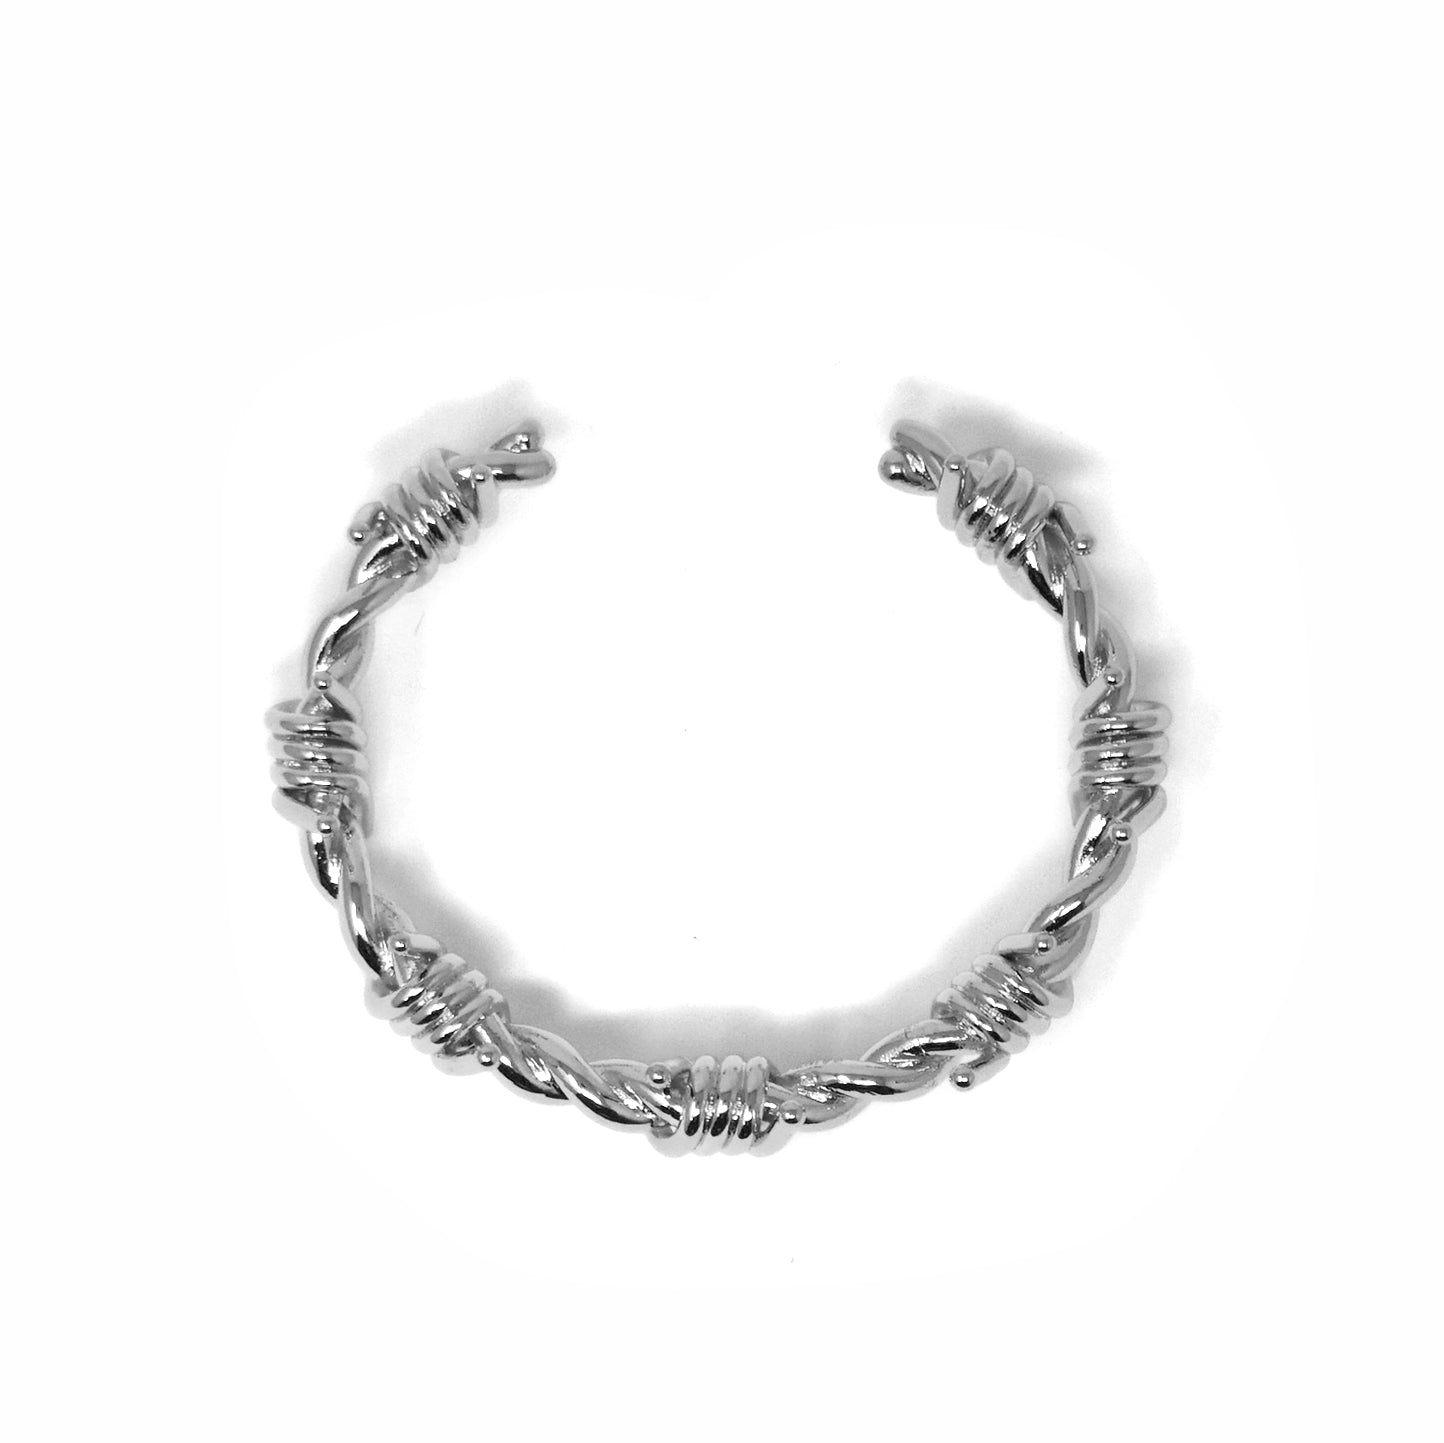 BP x Saint Midas White Gold Barbed Wire Bracelet